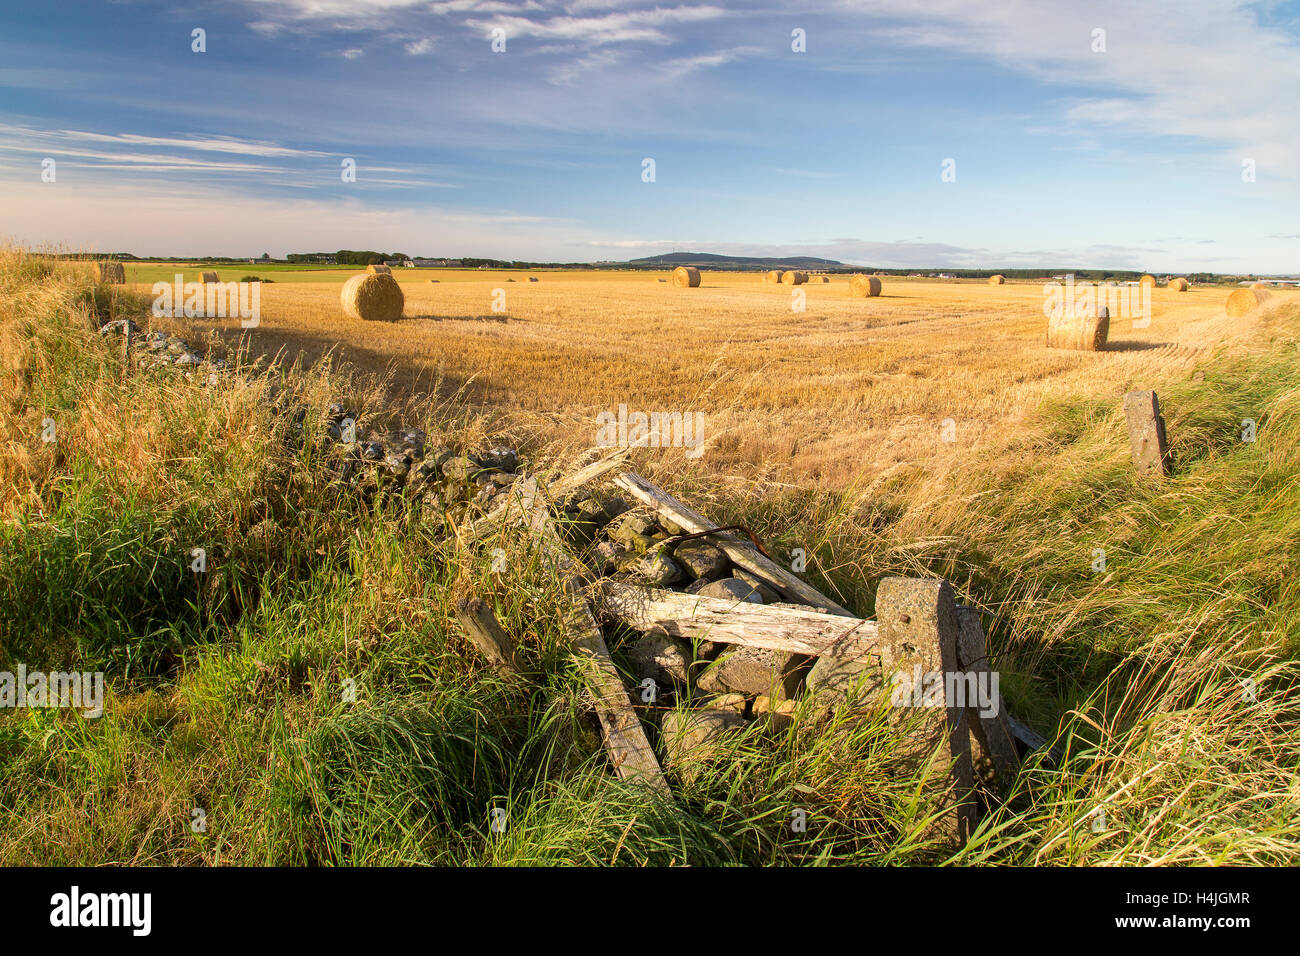 Hay bales in field with broken wall and fence agriculture farming UK - Stock Image